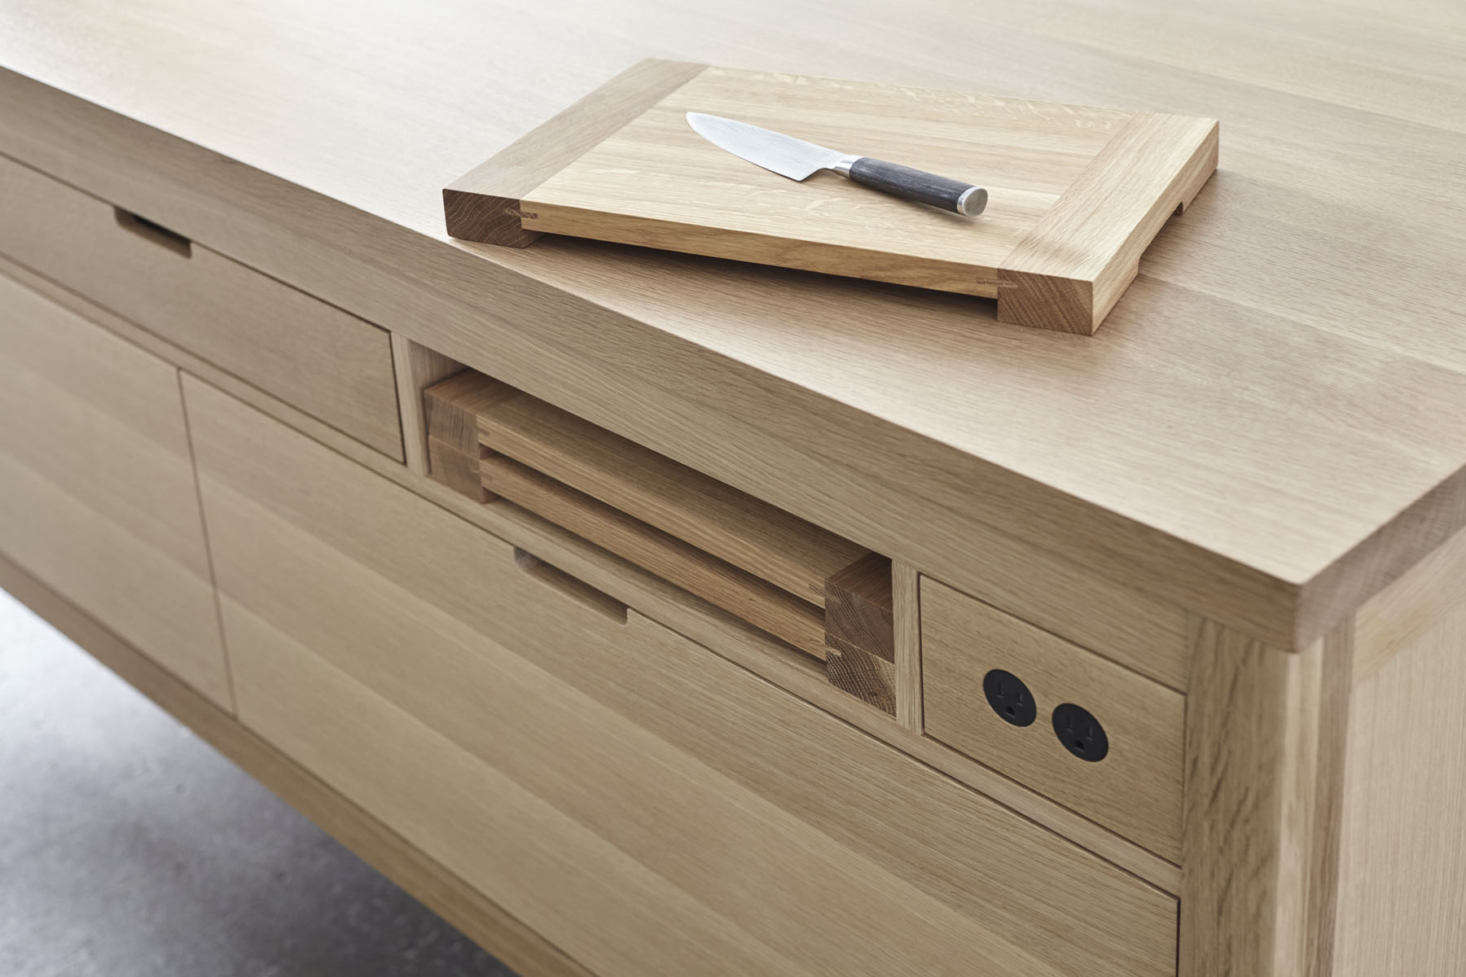 When not in use, the cutting boards are tucked away in an easy-to-reach niche.